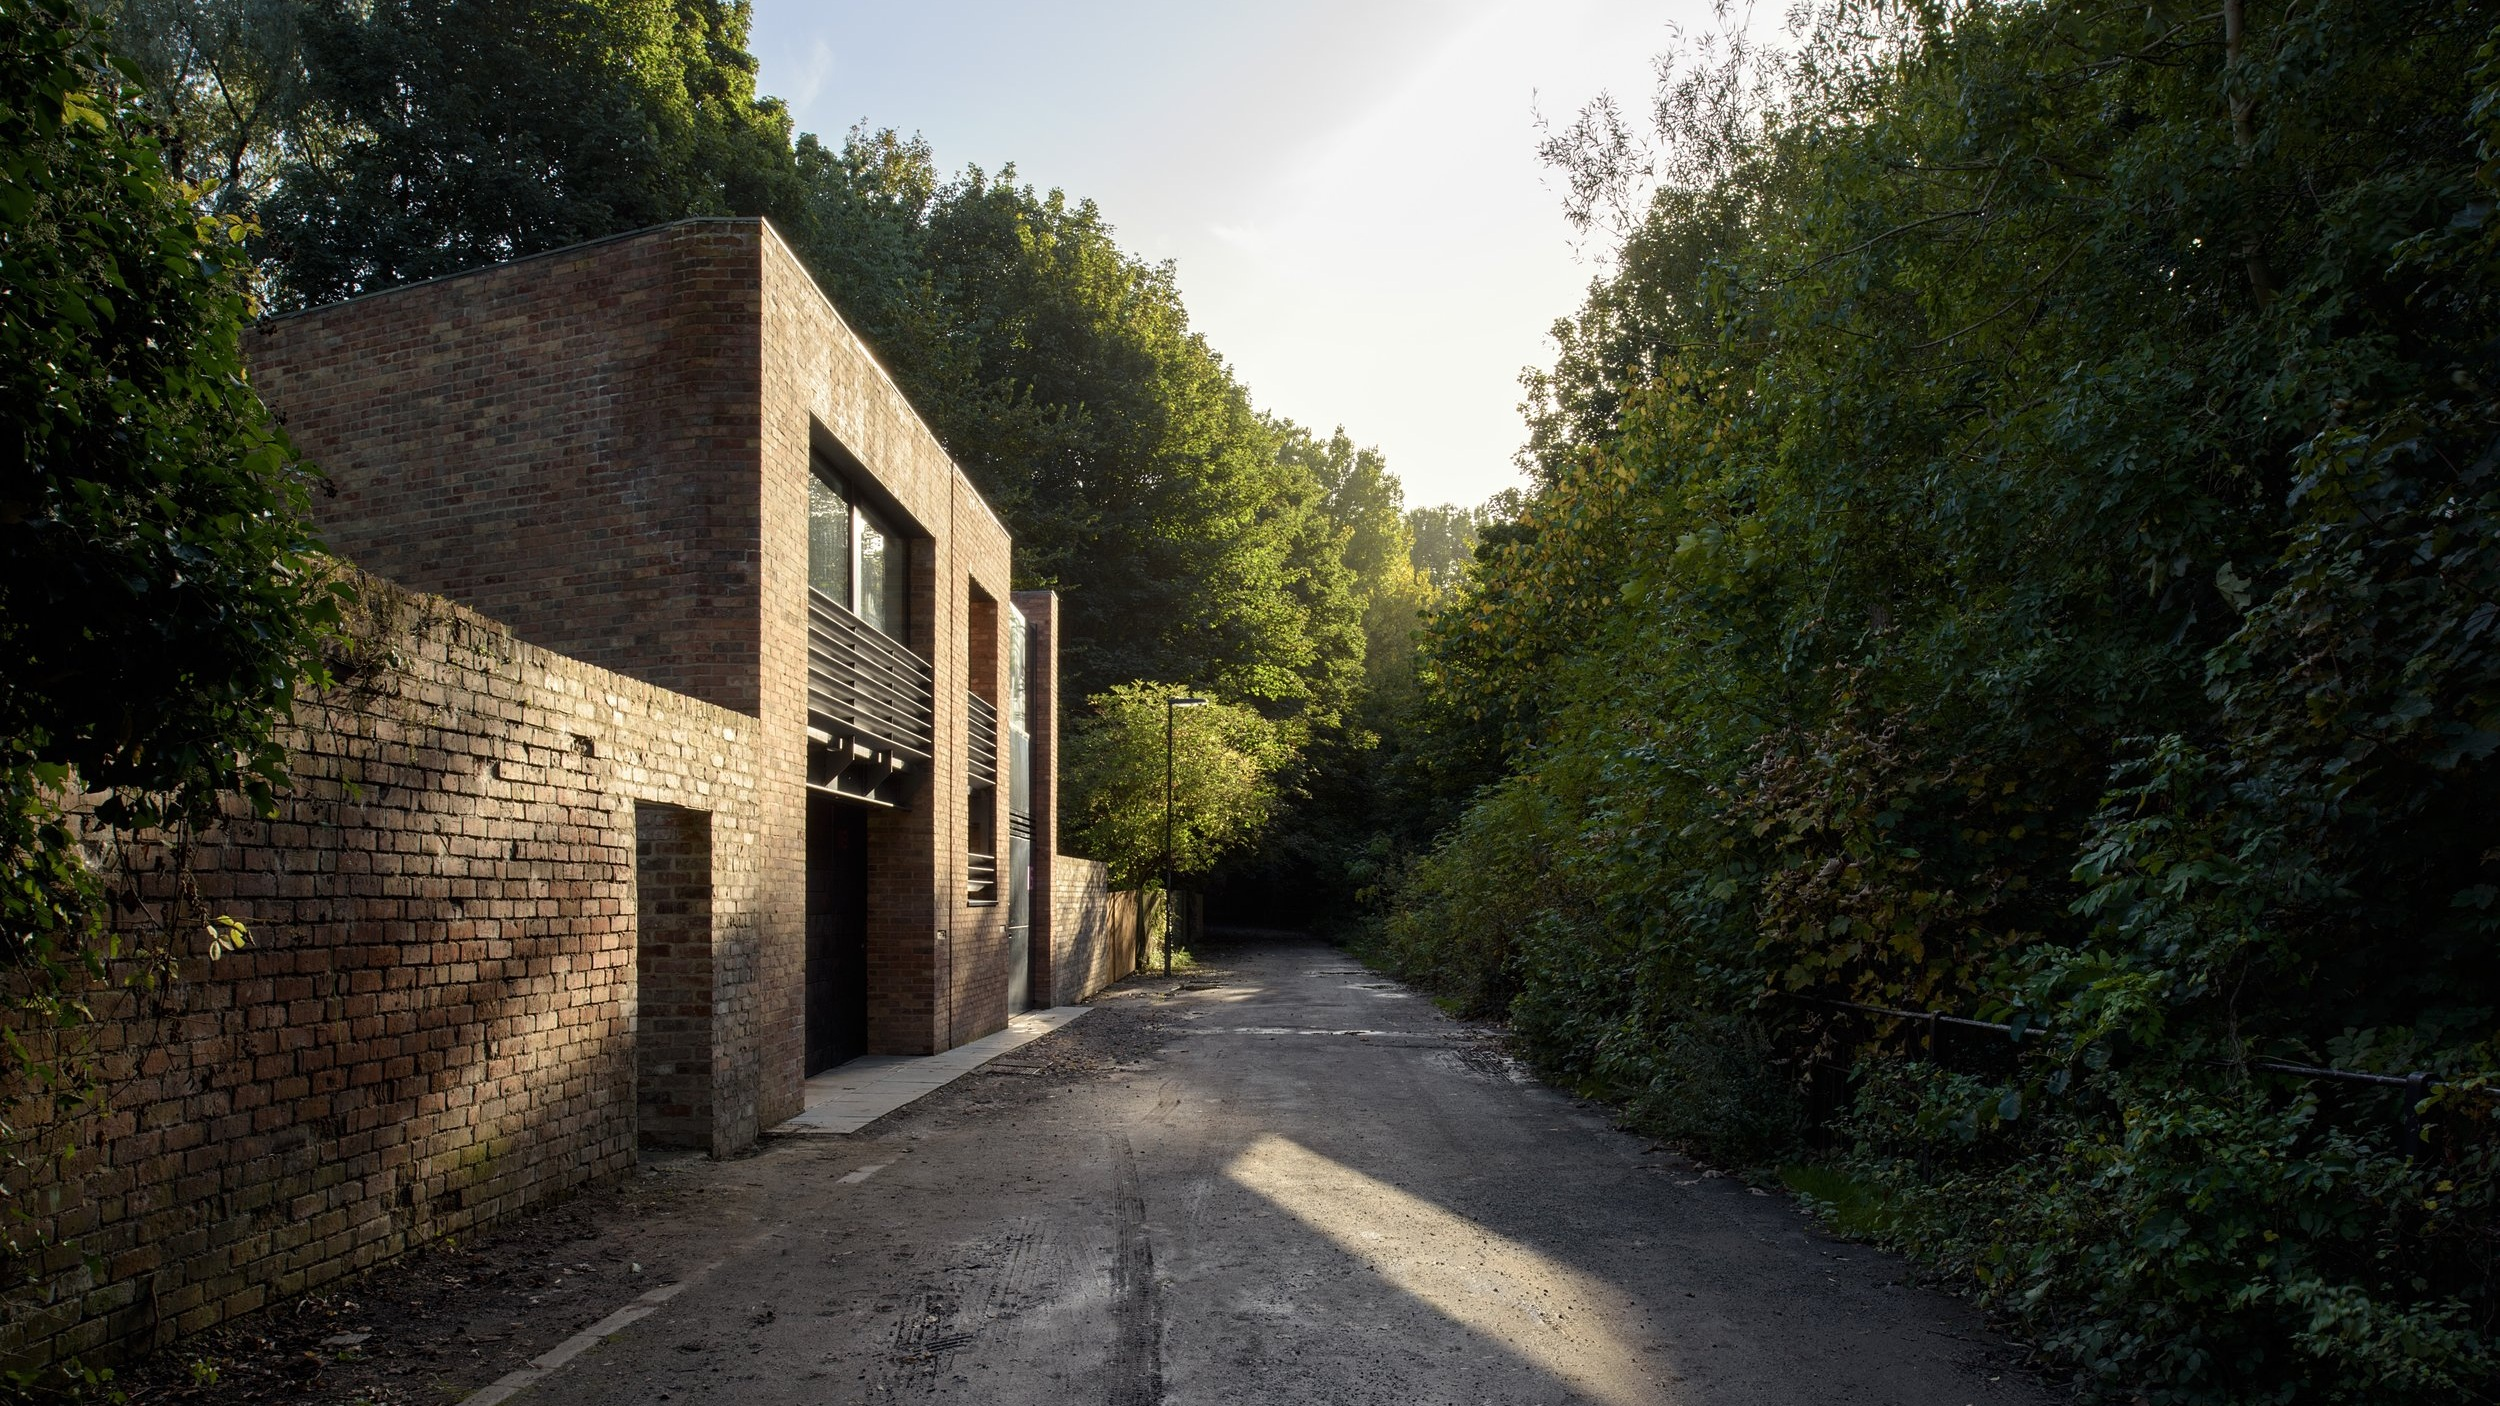 RIBA House of the Year 2018 finalist: 113-115 Ouseburn Road, Newscastle-upon-Tyne, by Miller Partnership Architects